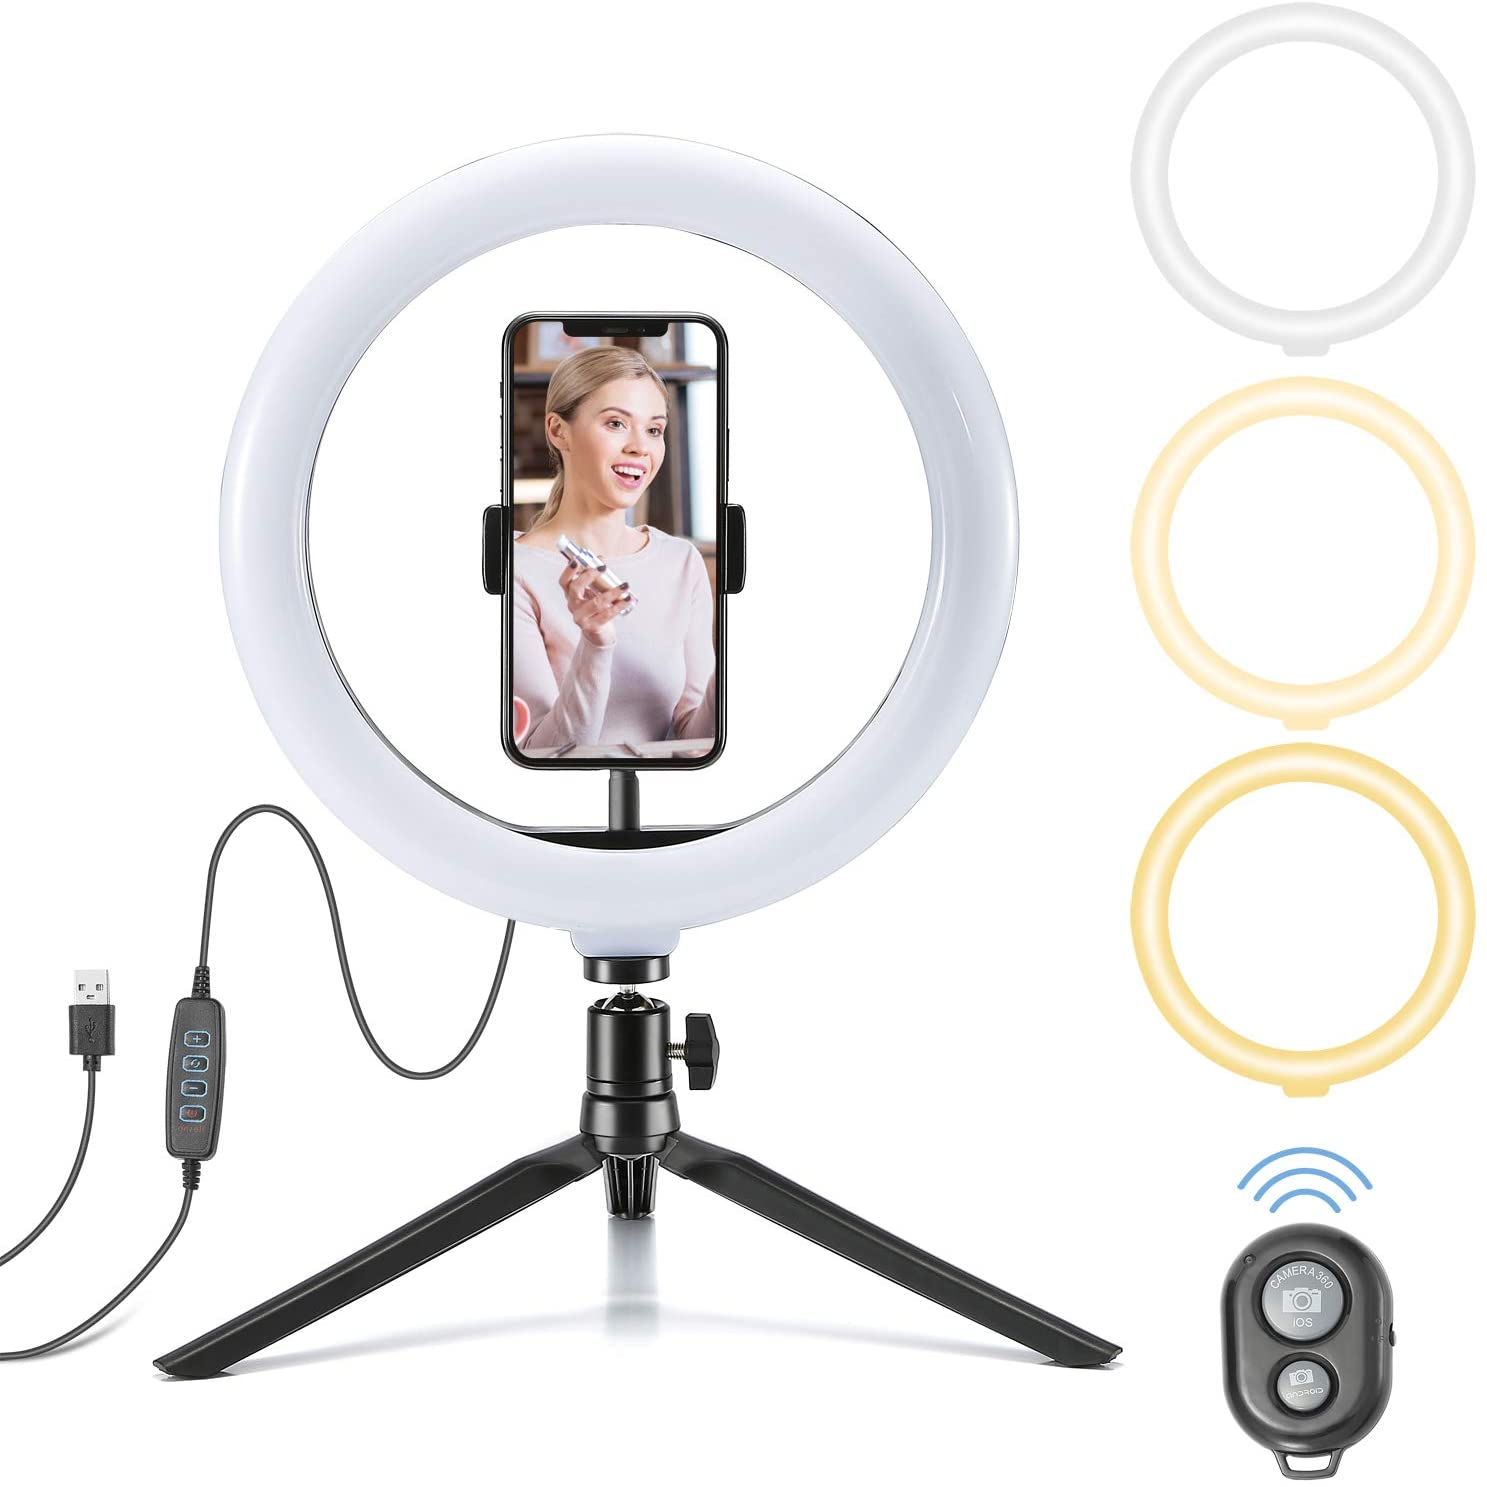 """10""""Ring Light LED Desktop Selfie Ring Light with Tripod Stand and Phone Holder,Adjustable Selfie Circle Light with Remote for Makeup, TikTok, Live Streaming,YouTube,Self- Portrait Shooting"""